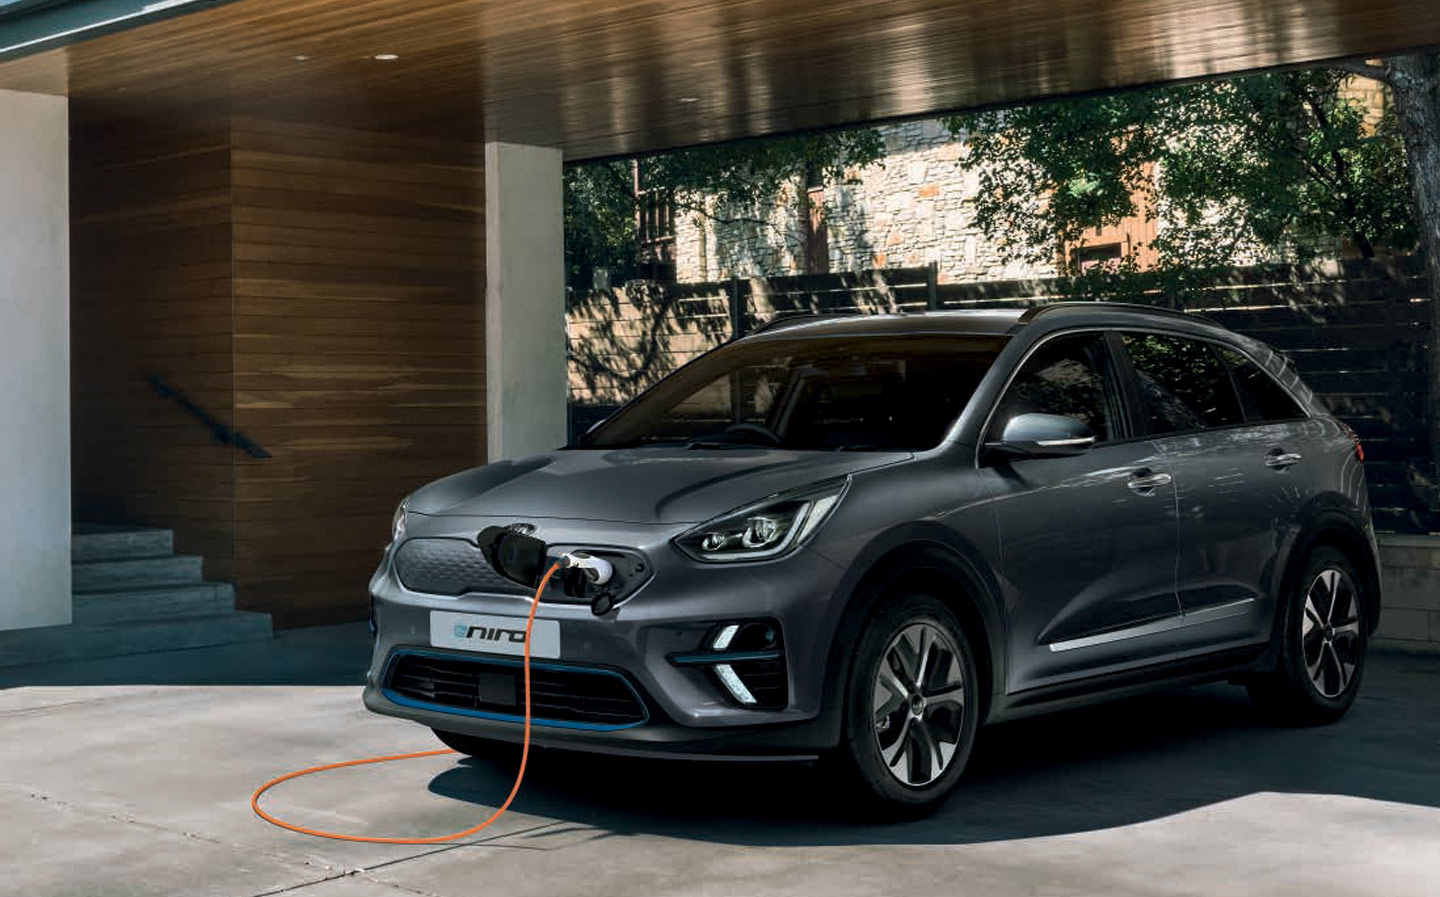 kia-e-niro-home-of-the-future